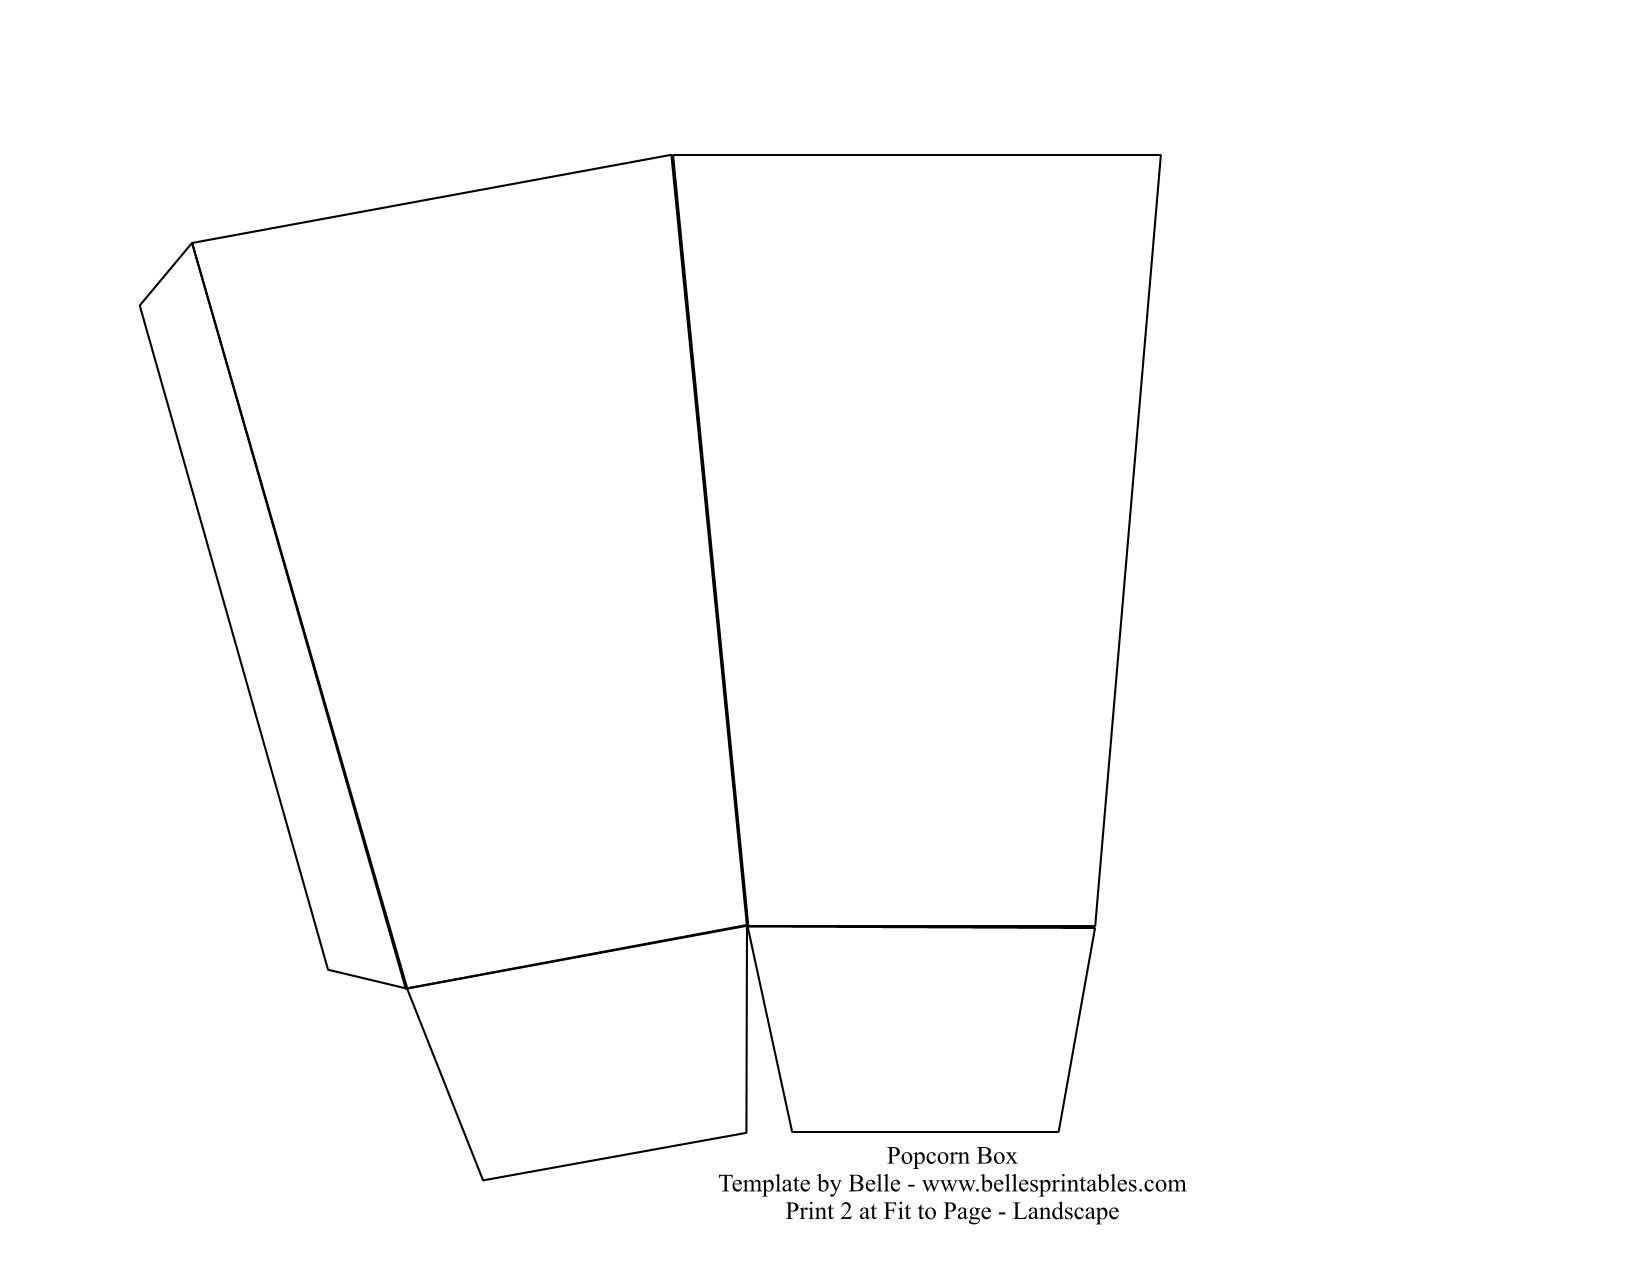 Popcorn box template bellesprintables diy printable for Popcorn container template